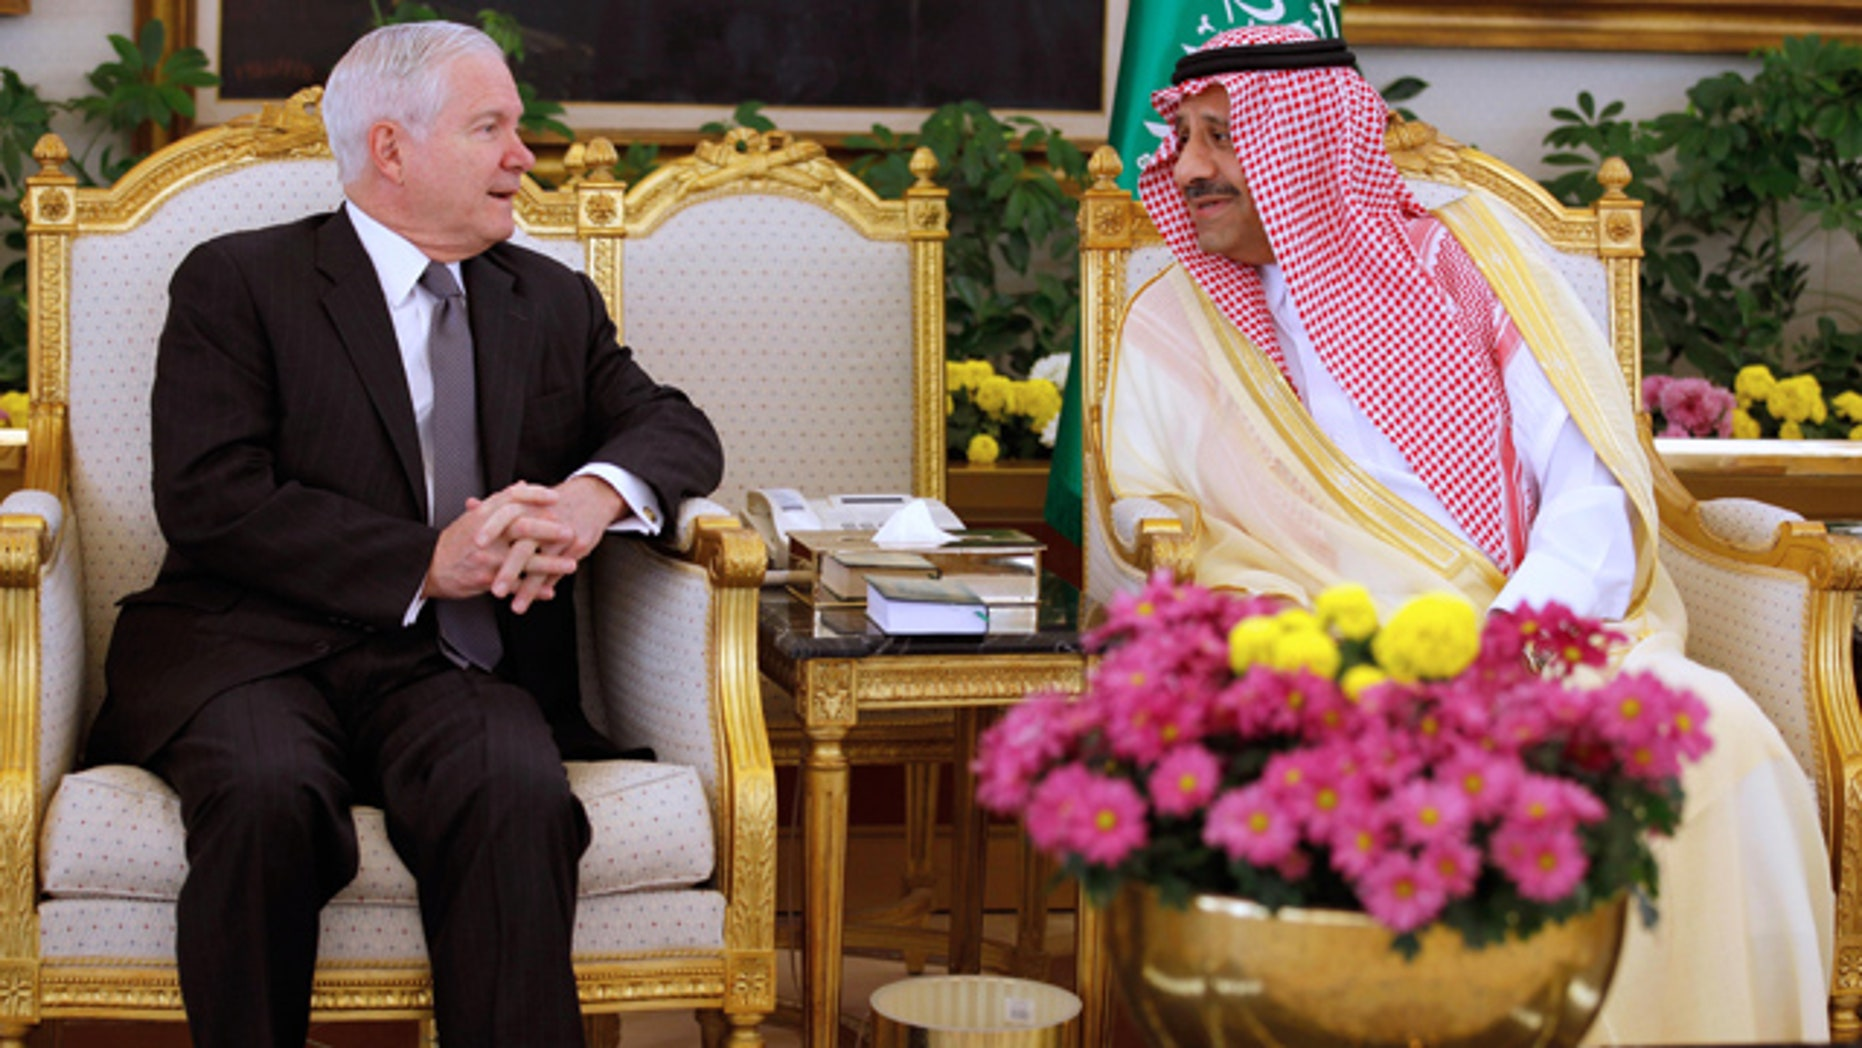 April 6: U.S.  Defense Secretary Robert Gates, left, talks with Saudi Assistant Minister of Defense and Aviation Prince Khalid bin Sultan during a  ceremony in Riyadh, Saudi Arabia.